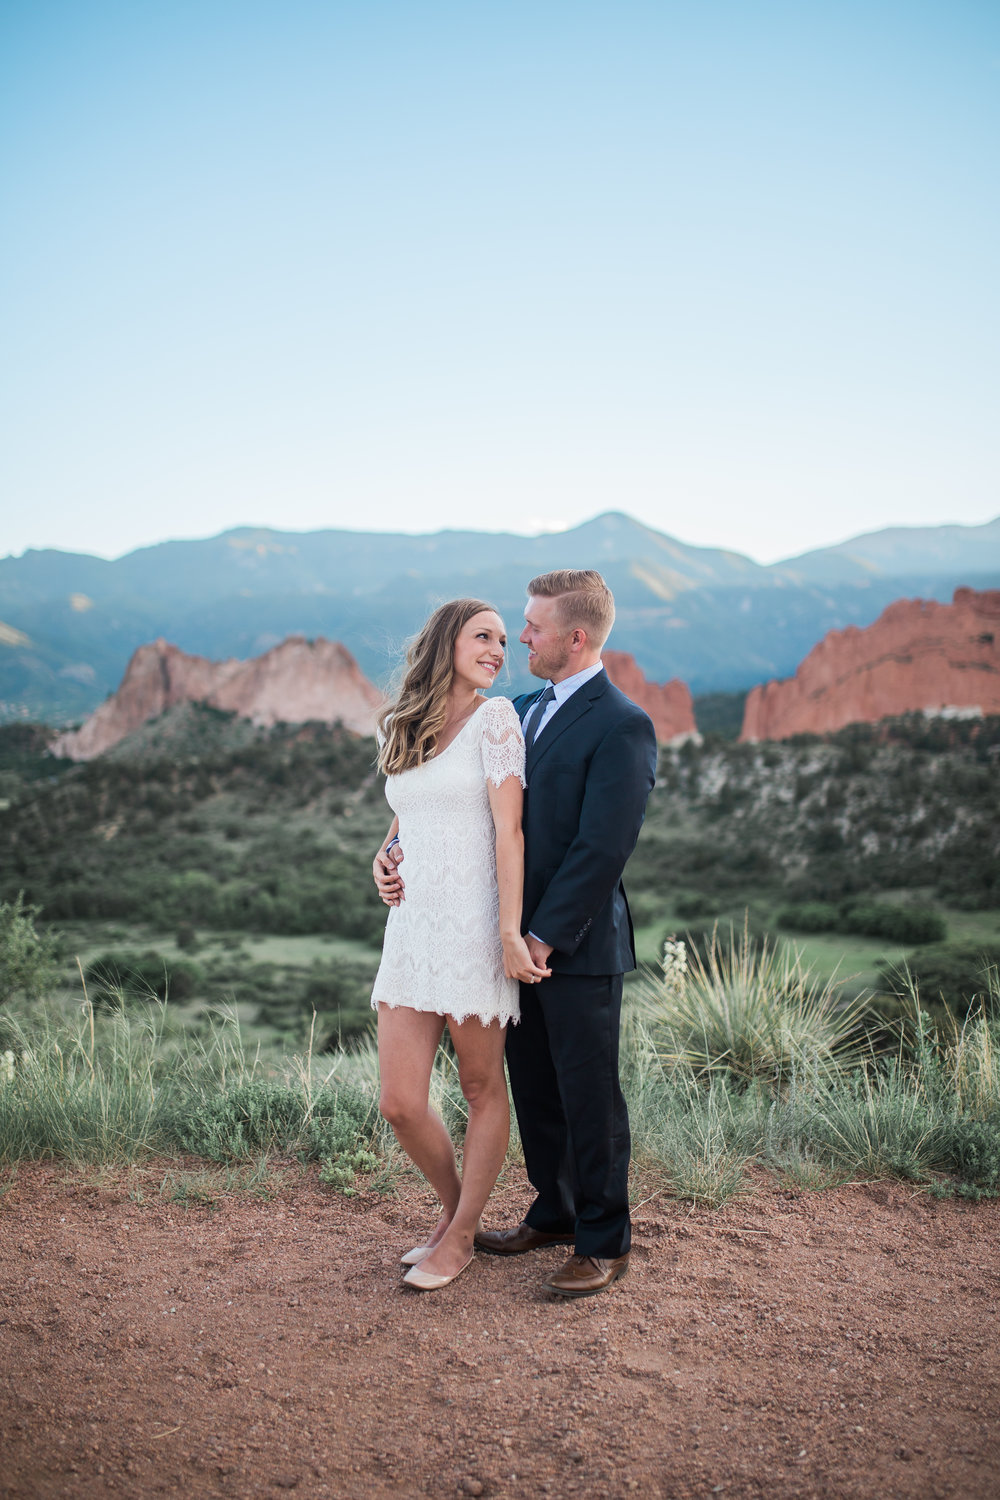 Nicole + Cameron - Garden of the Gods